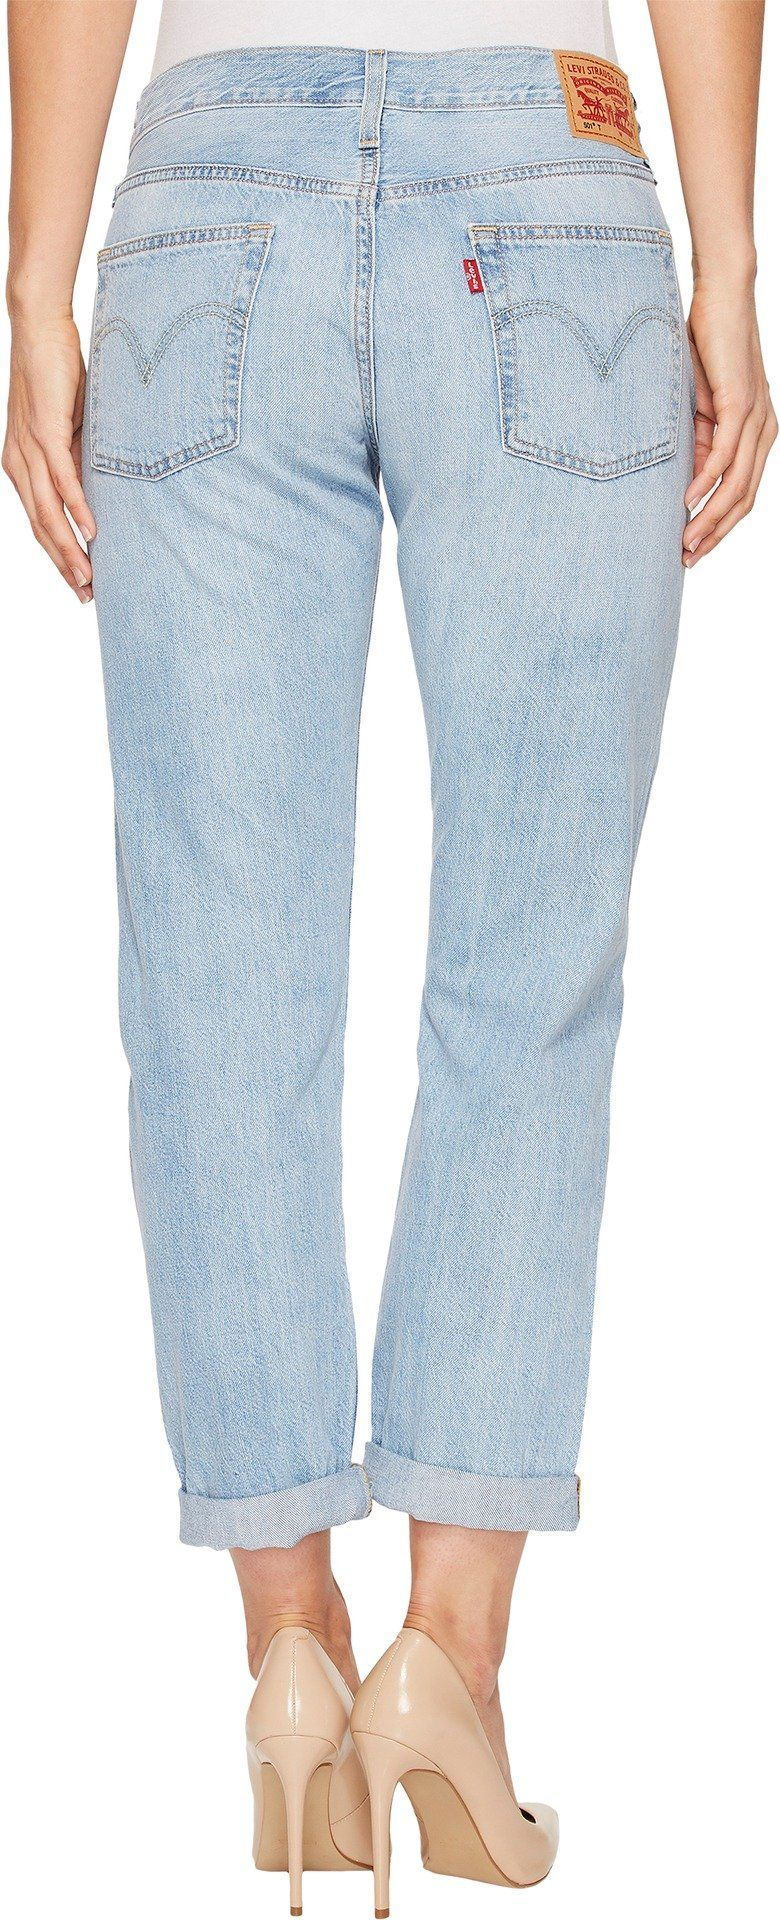 8c10a332574 Levis Womens 501 Taper Jeans Just a Girl 32 US 14 * You can get additional  details at the image link. (This is an affiliate link and I receive a  commission ...